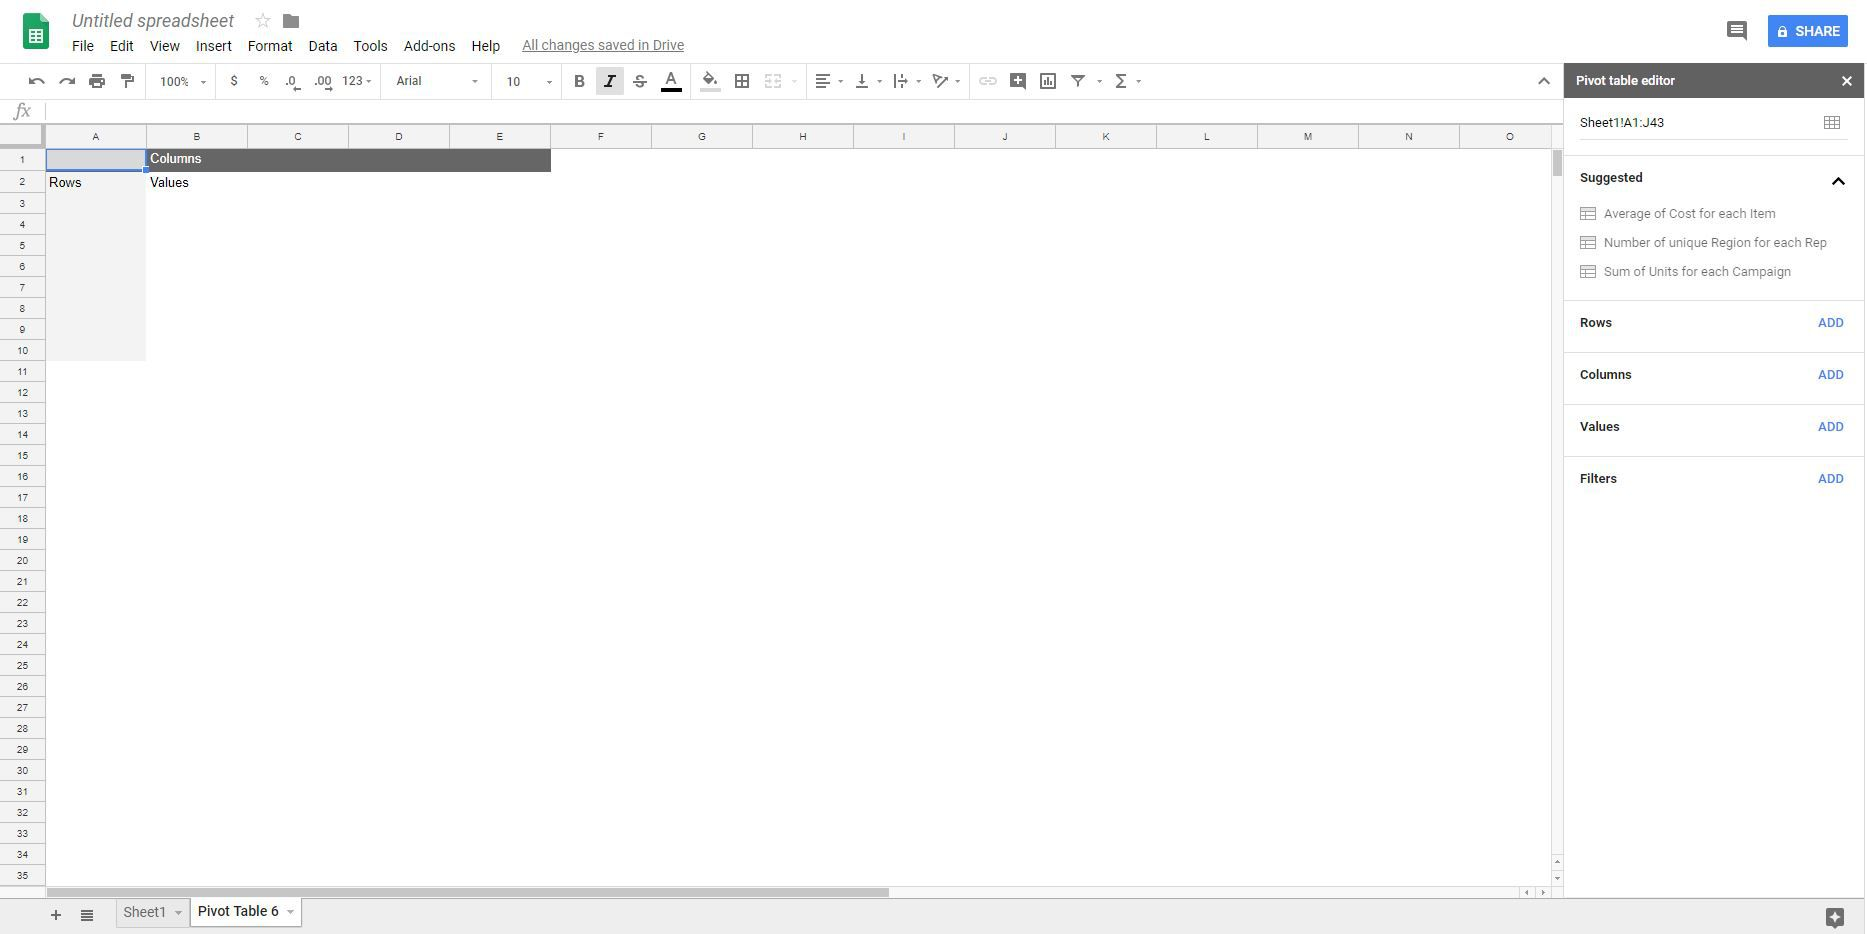 Pivot table sheet and editor in Google Sheets